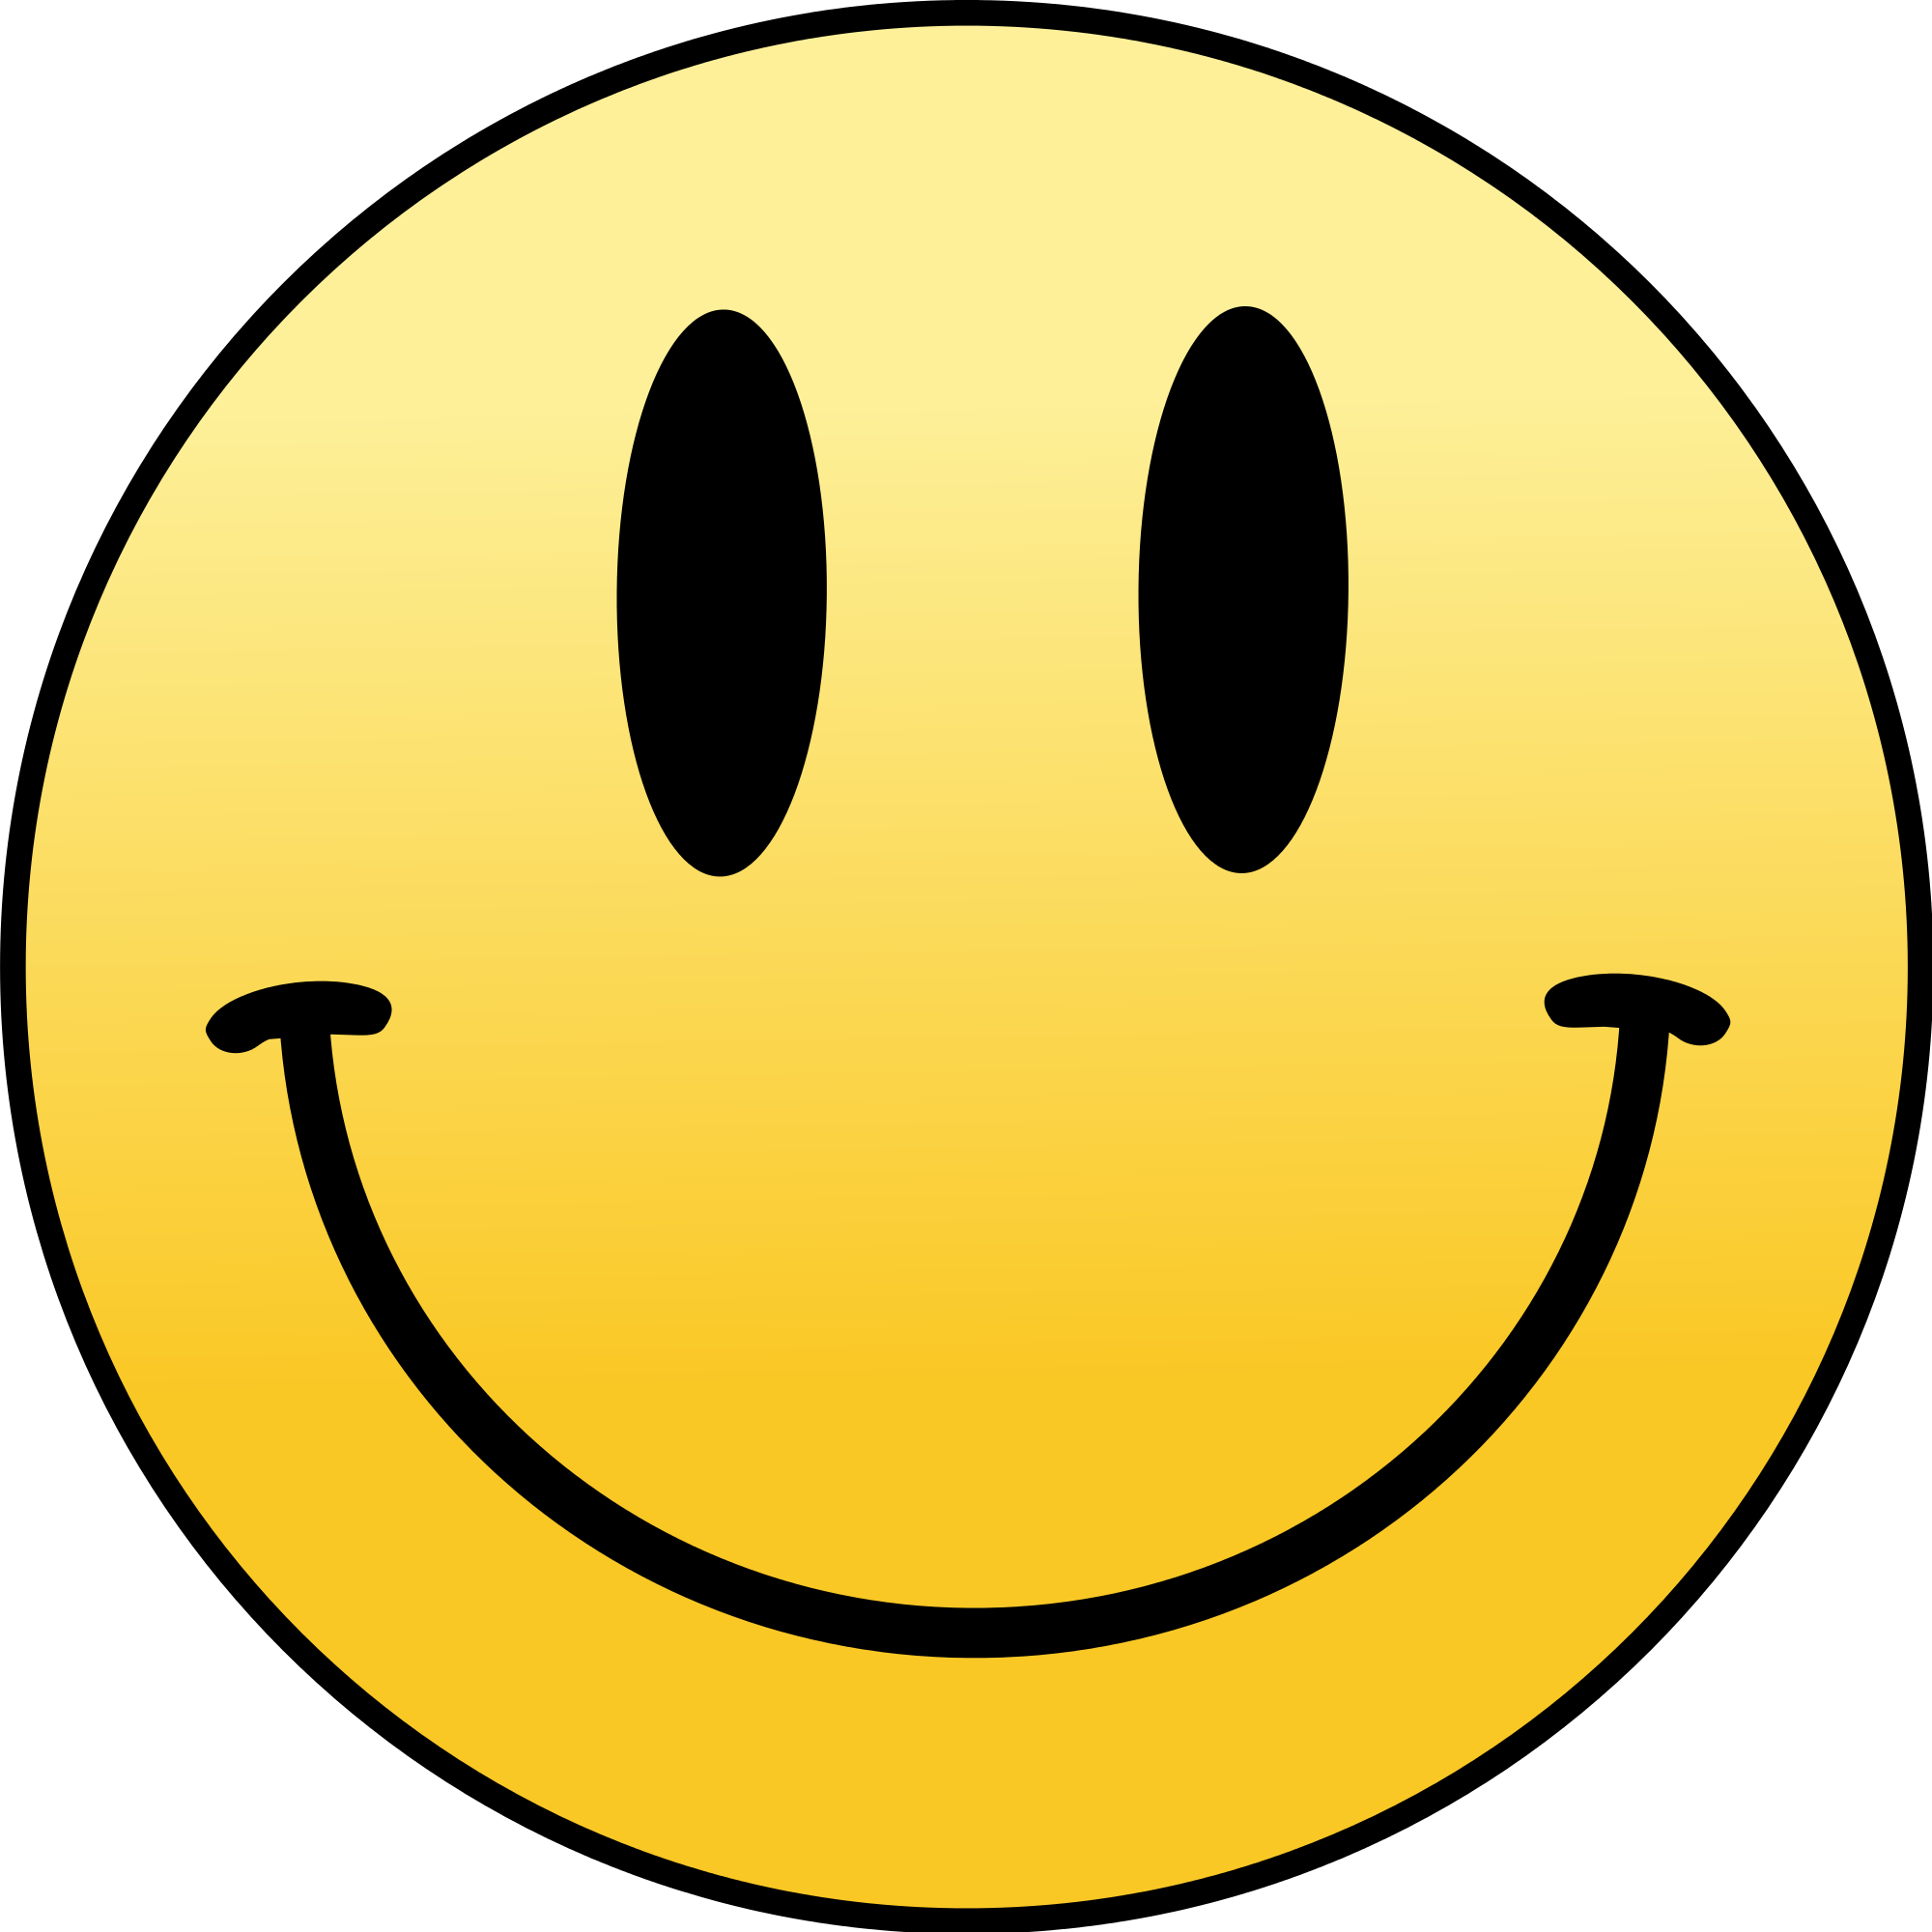 Emoticons png download. Smiley images free